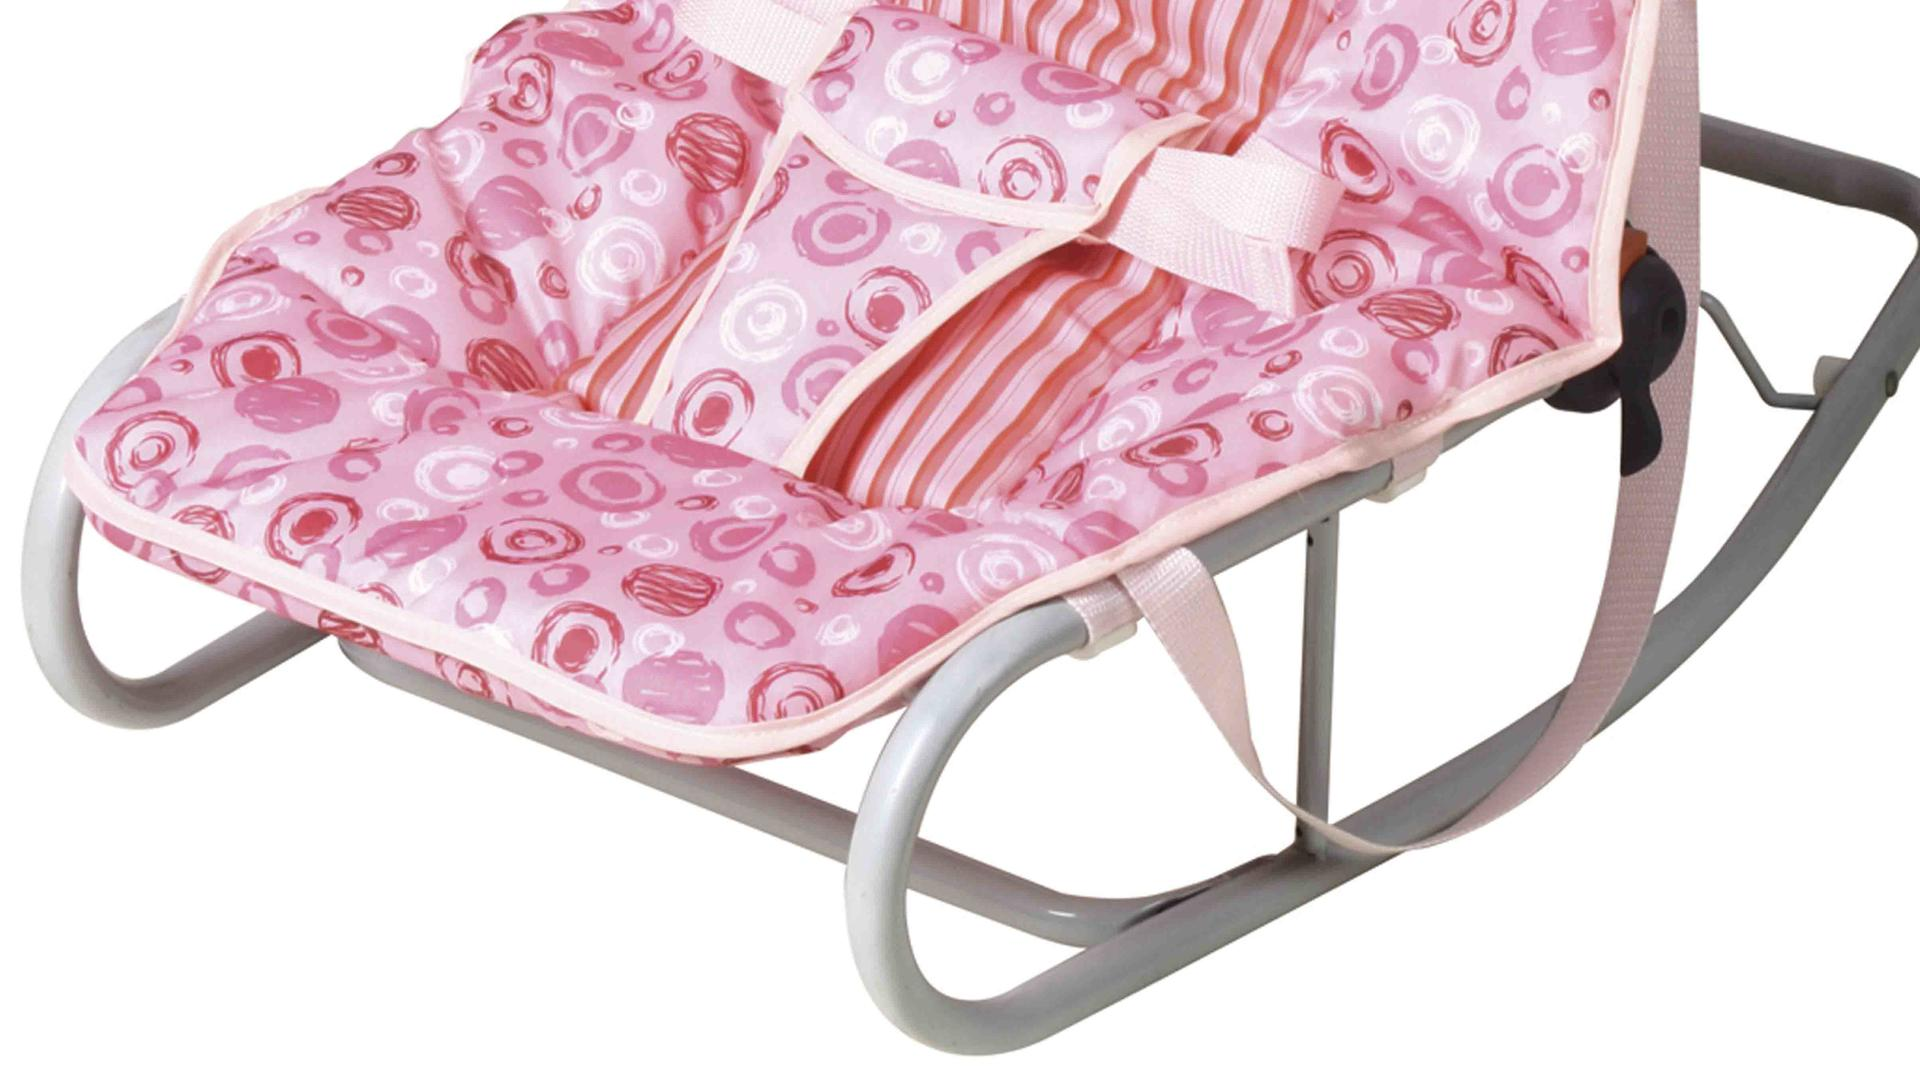 Wholesale rocker baby rocking chairs for sale Aoqi Brand